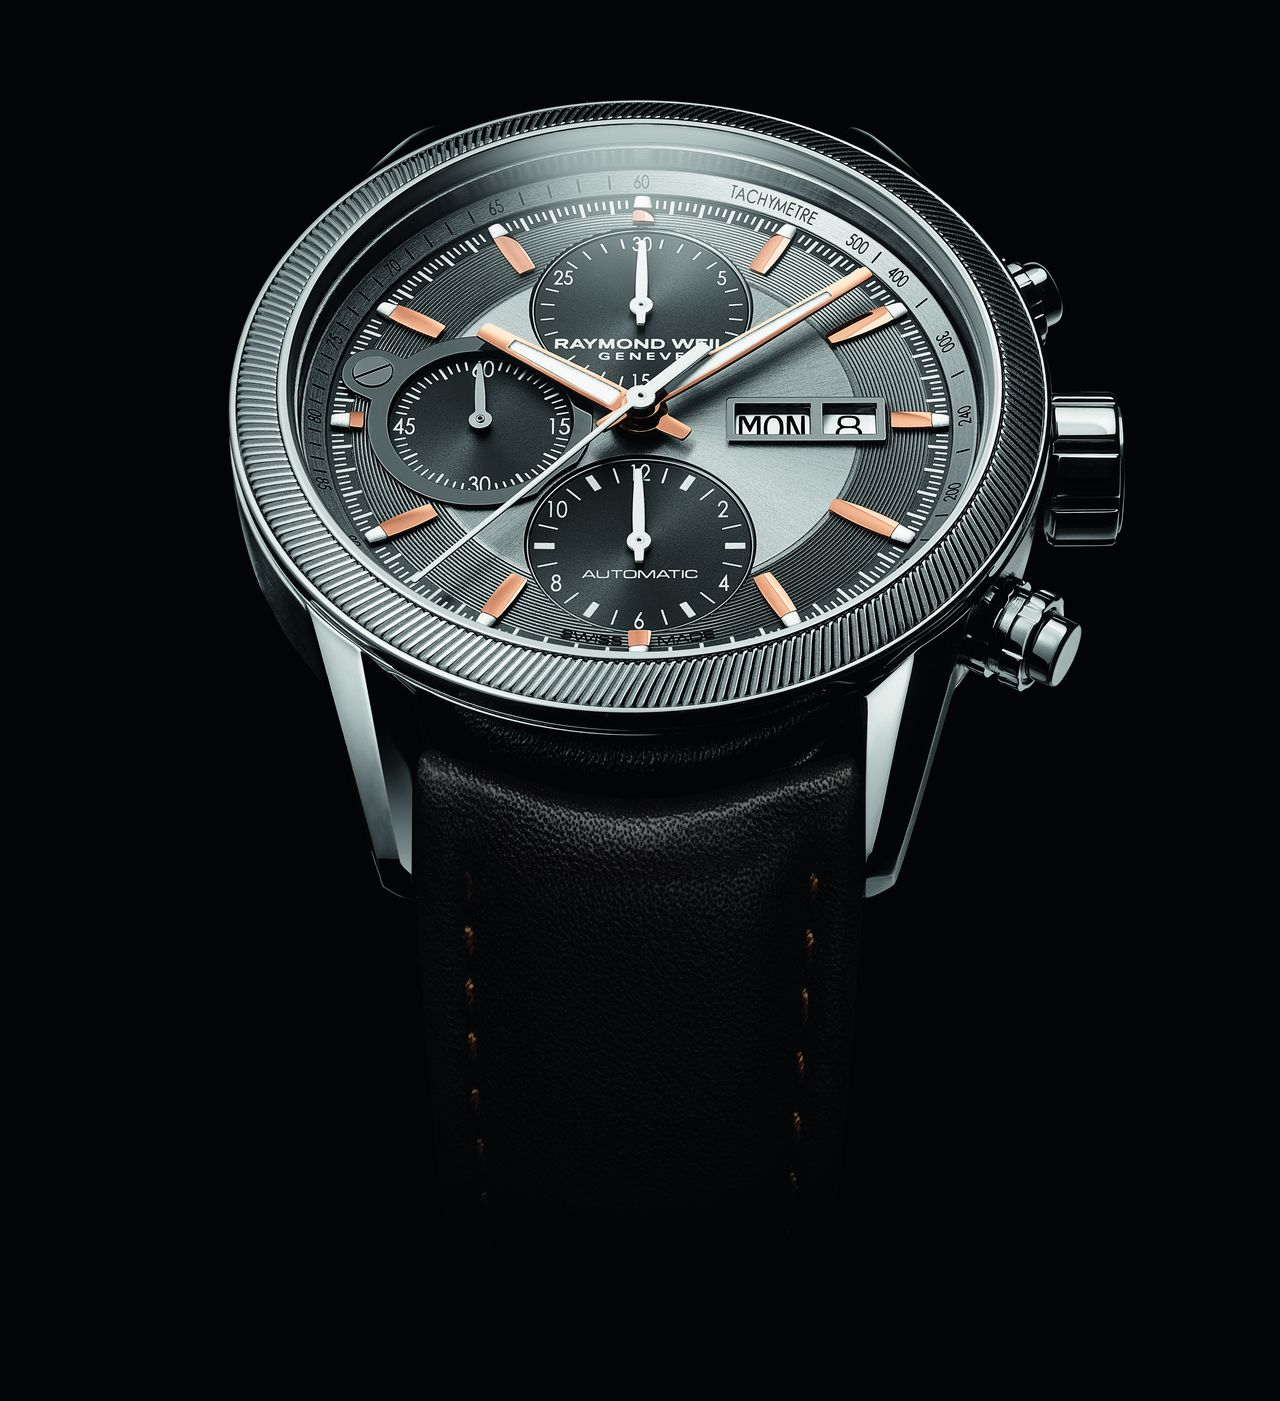 Raymond Weil Freelancer Chronograph 7731-sc2-6565